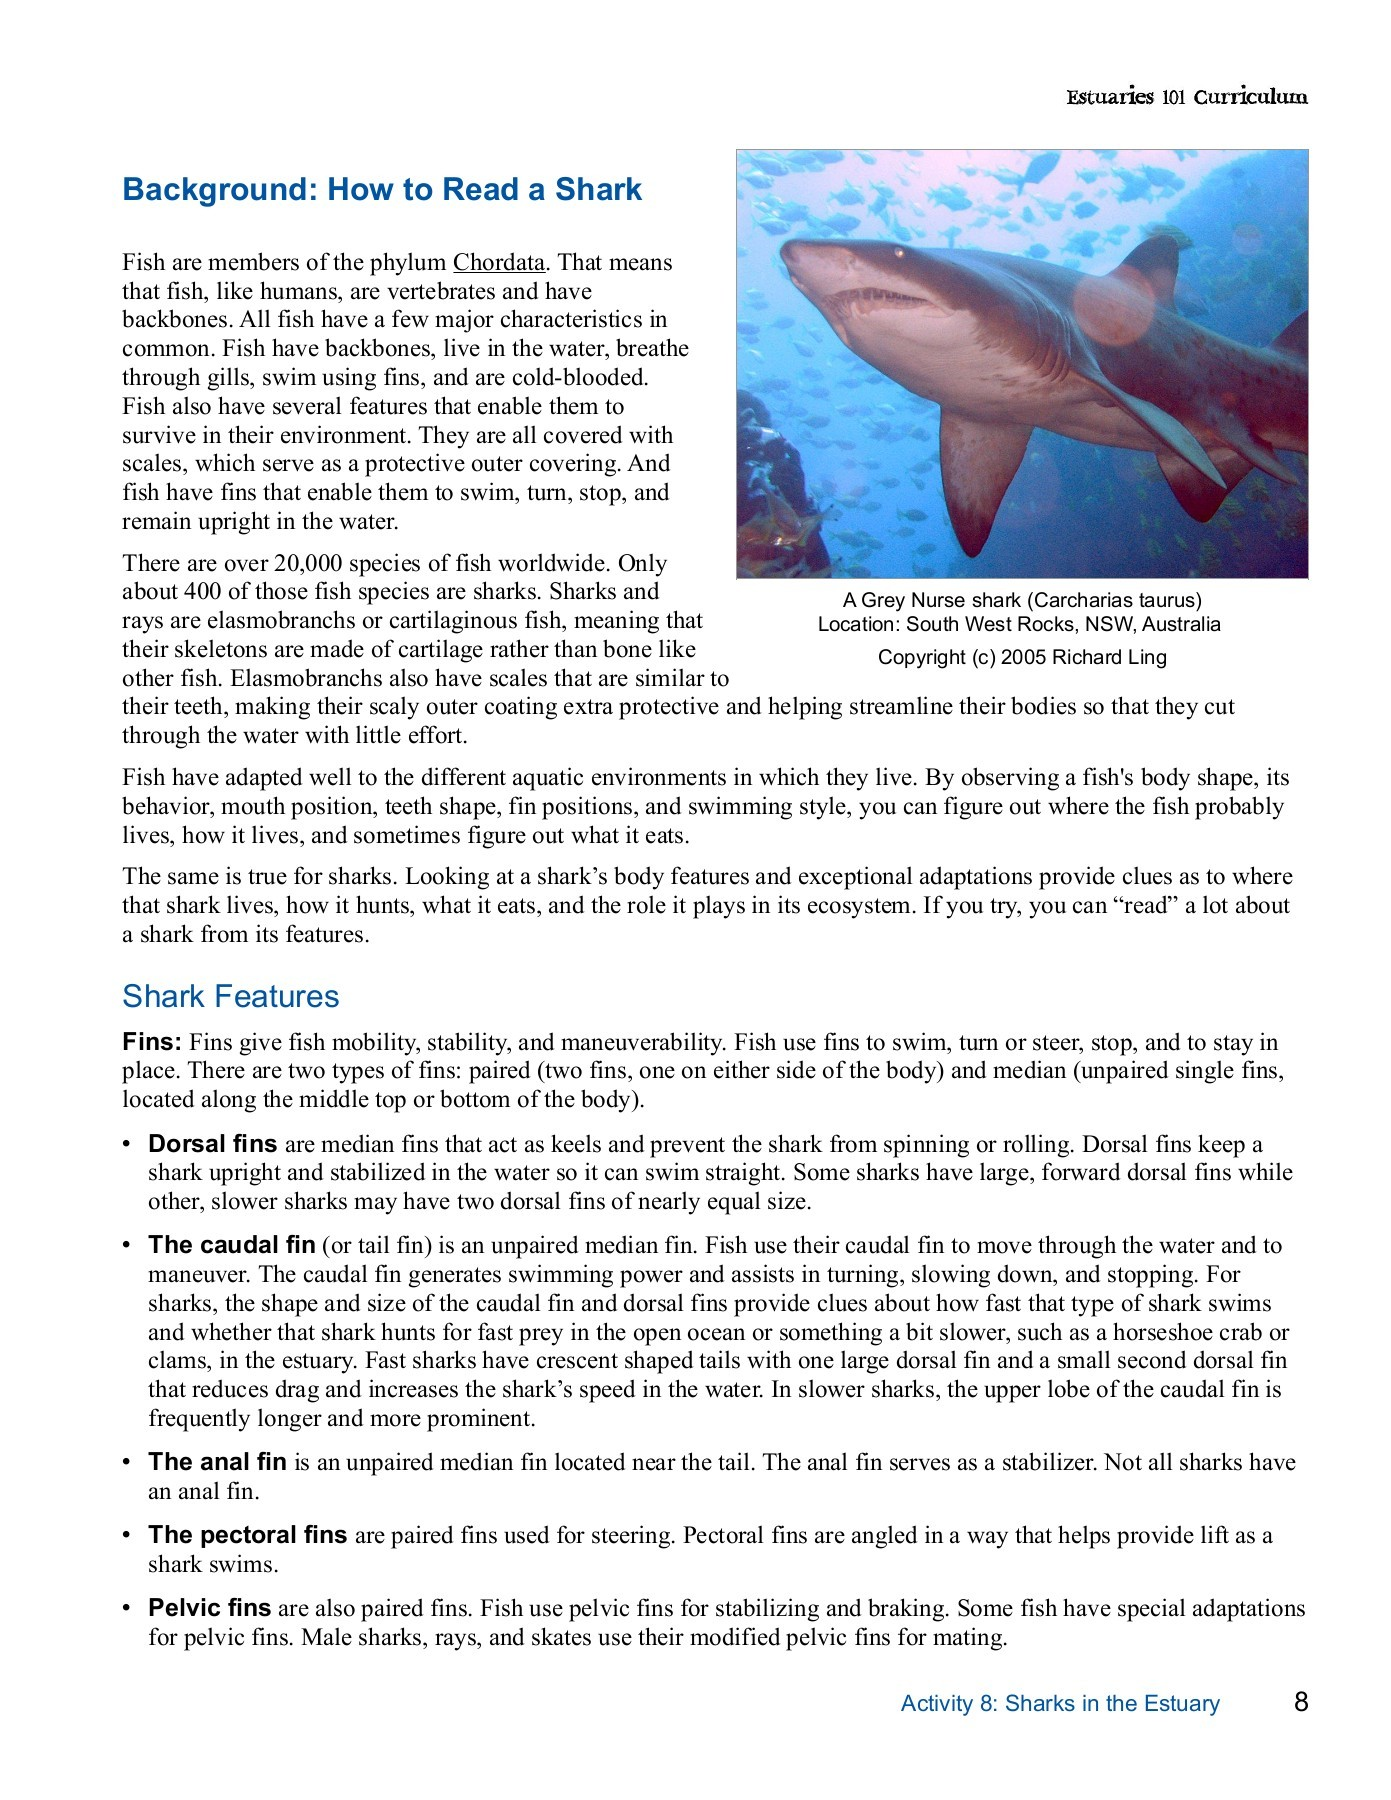 hight resolution of student master how to read a shark estuaries noaa gov pages 1 5 text version fliphtml5